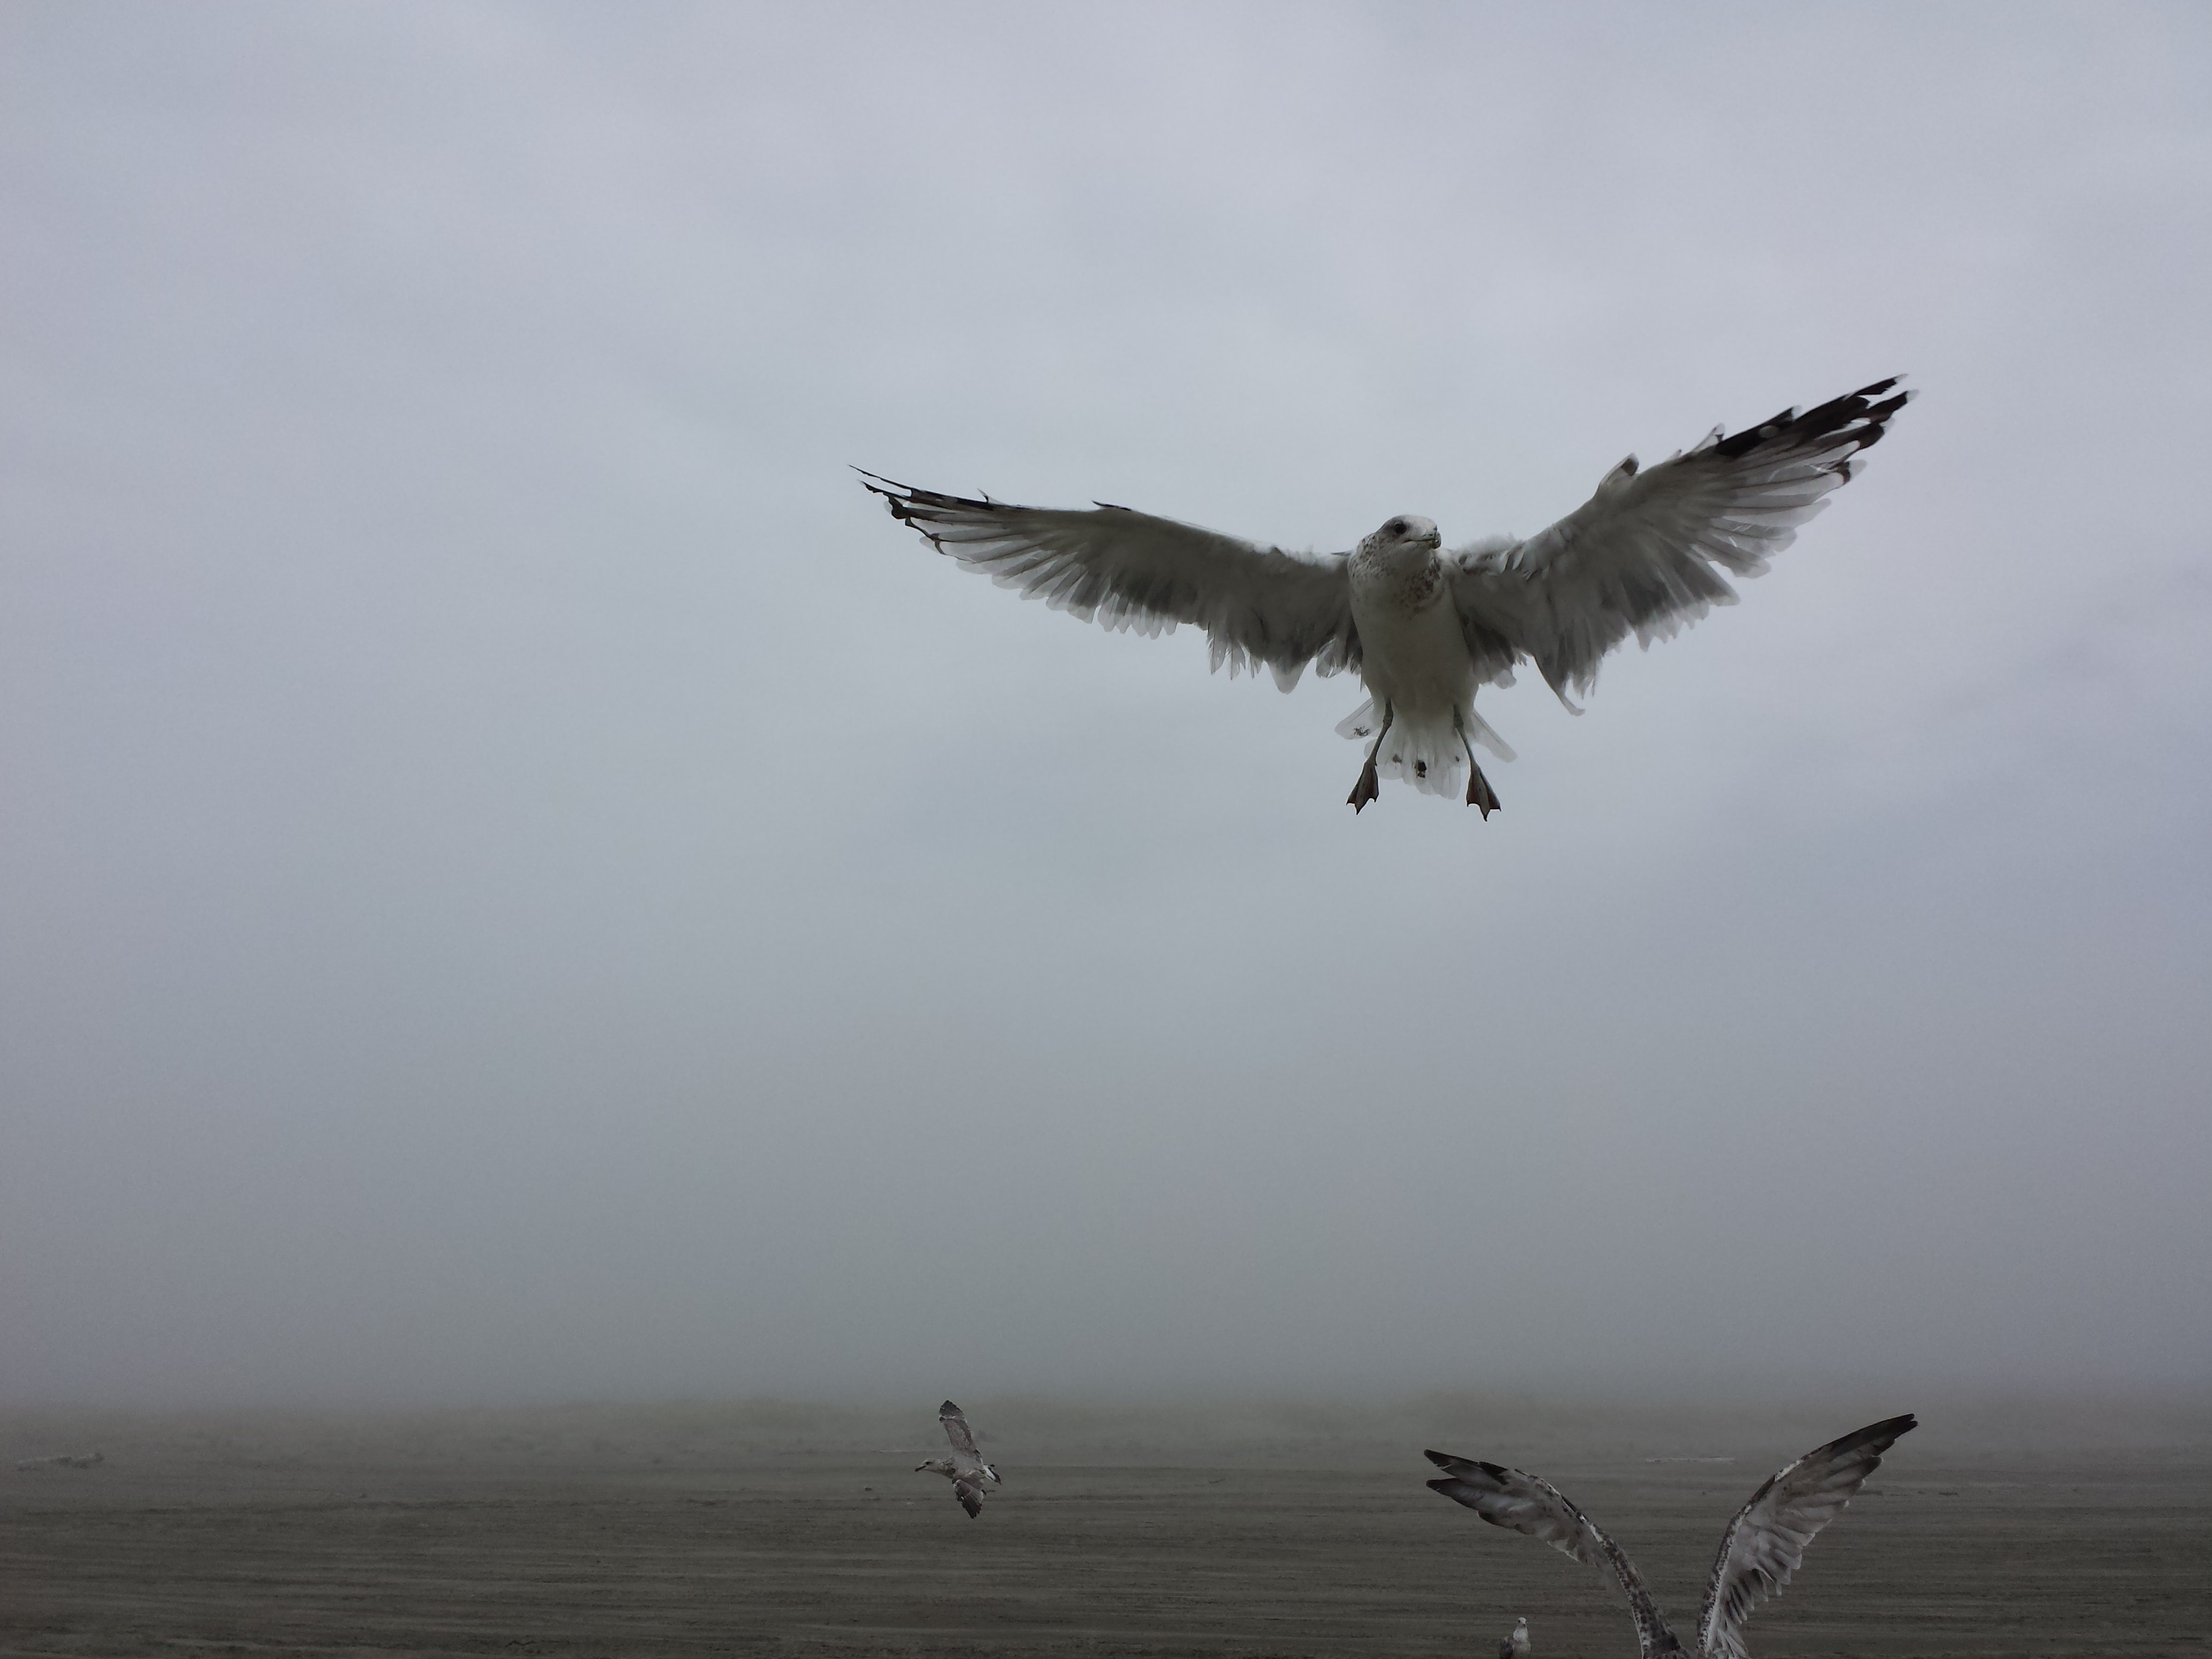 bird flying above body of water